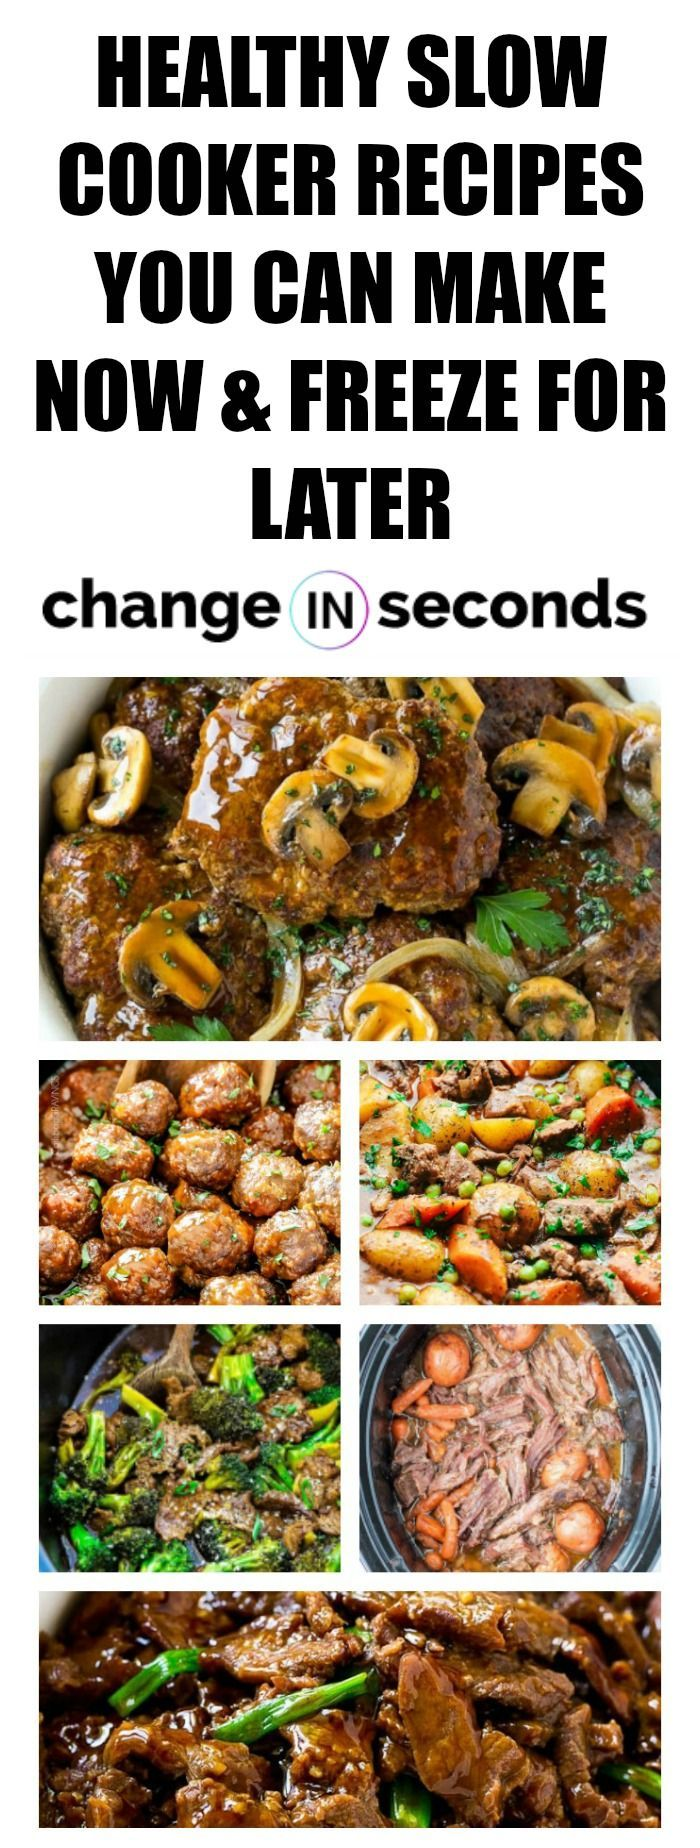 Healthy Slow Cooker Recipes You Can Make Now & Freeze For Later